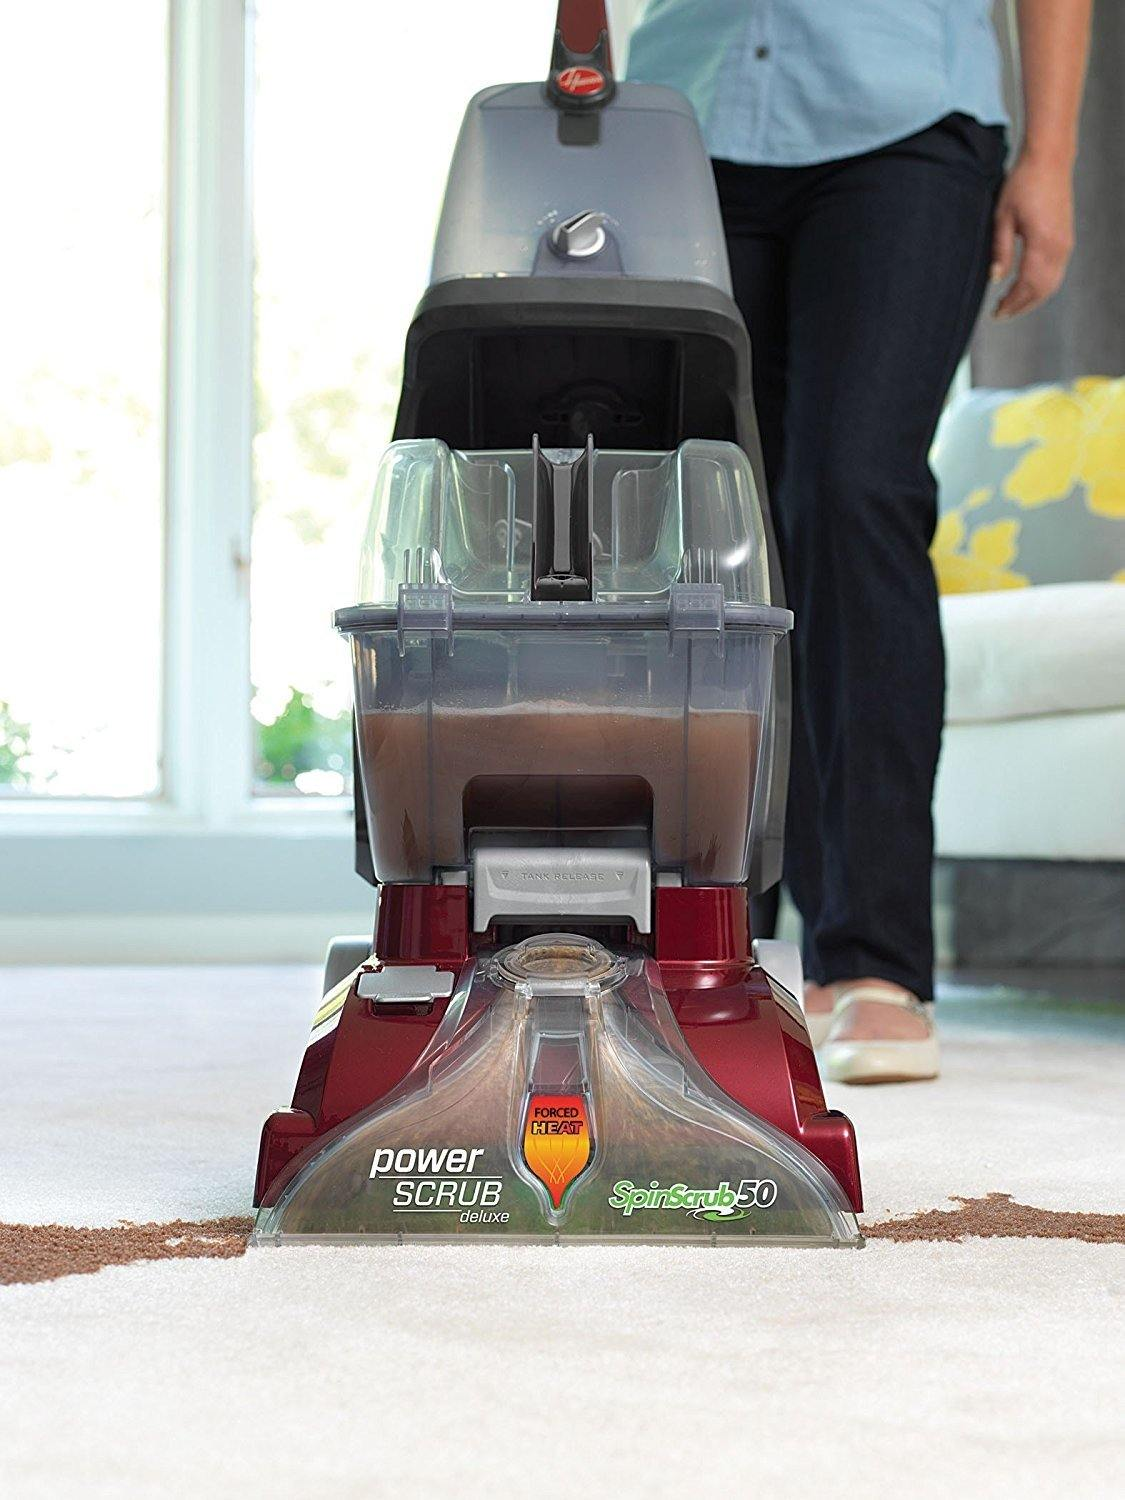 Hoover Power Scrub Deluxe Carpet Washer review